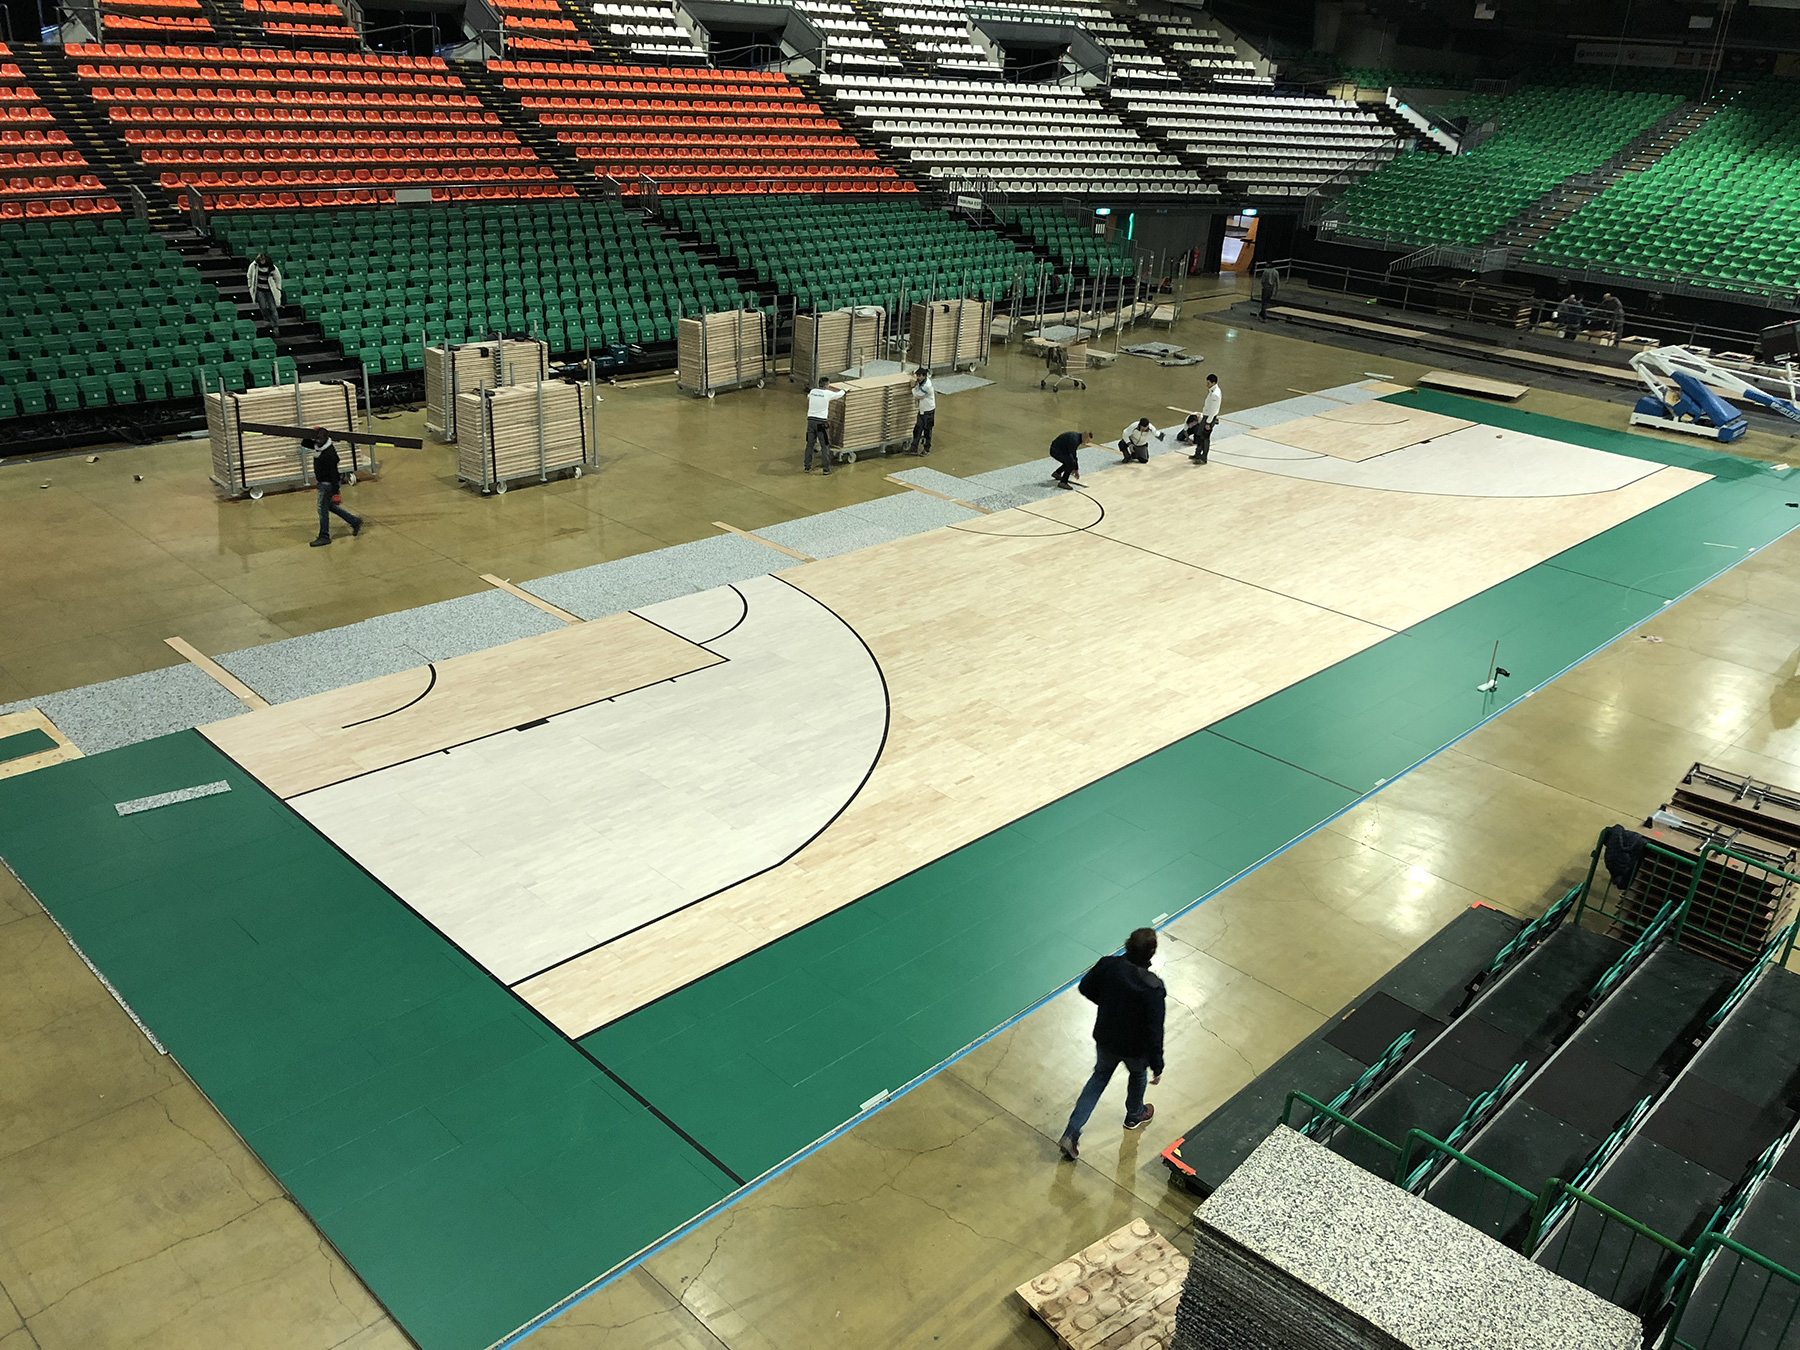 You see the new bleached areas: same treatment performed at the Forum of Assago, at PalaVela in Turin, at PalaLeonessa di Brescia and at PalaTrento